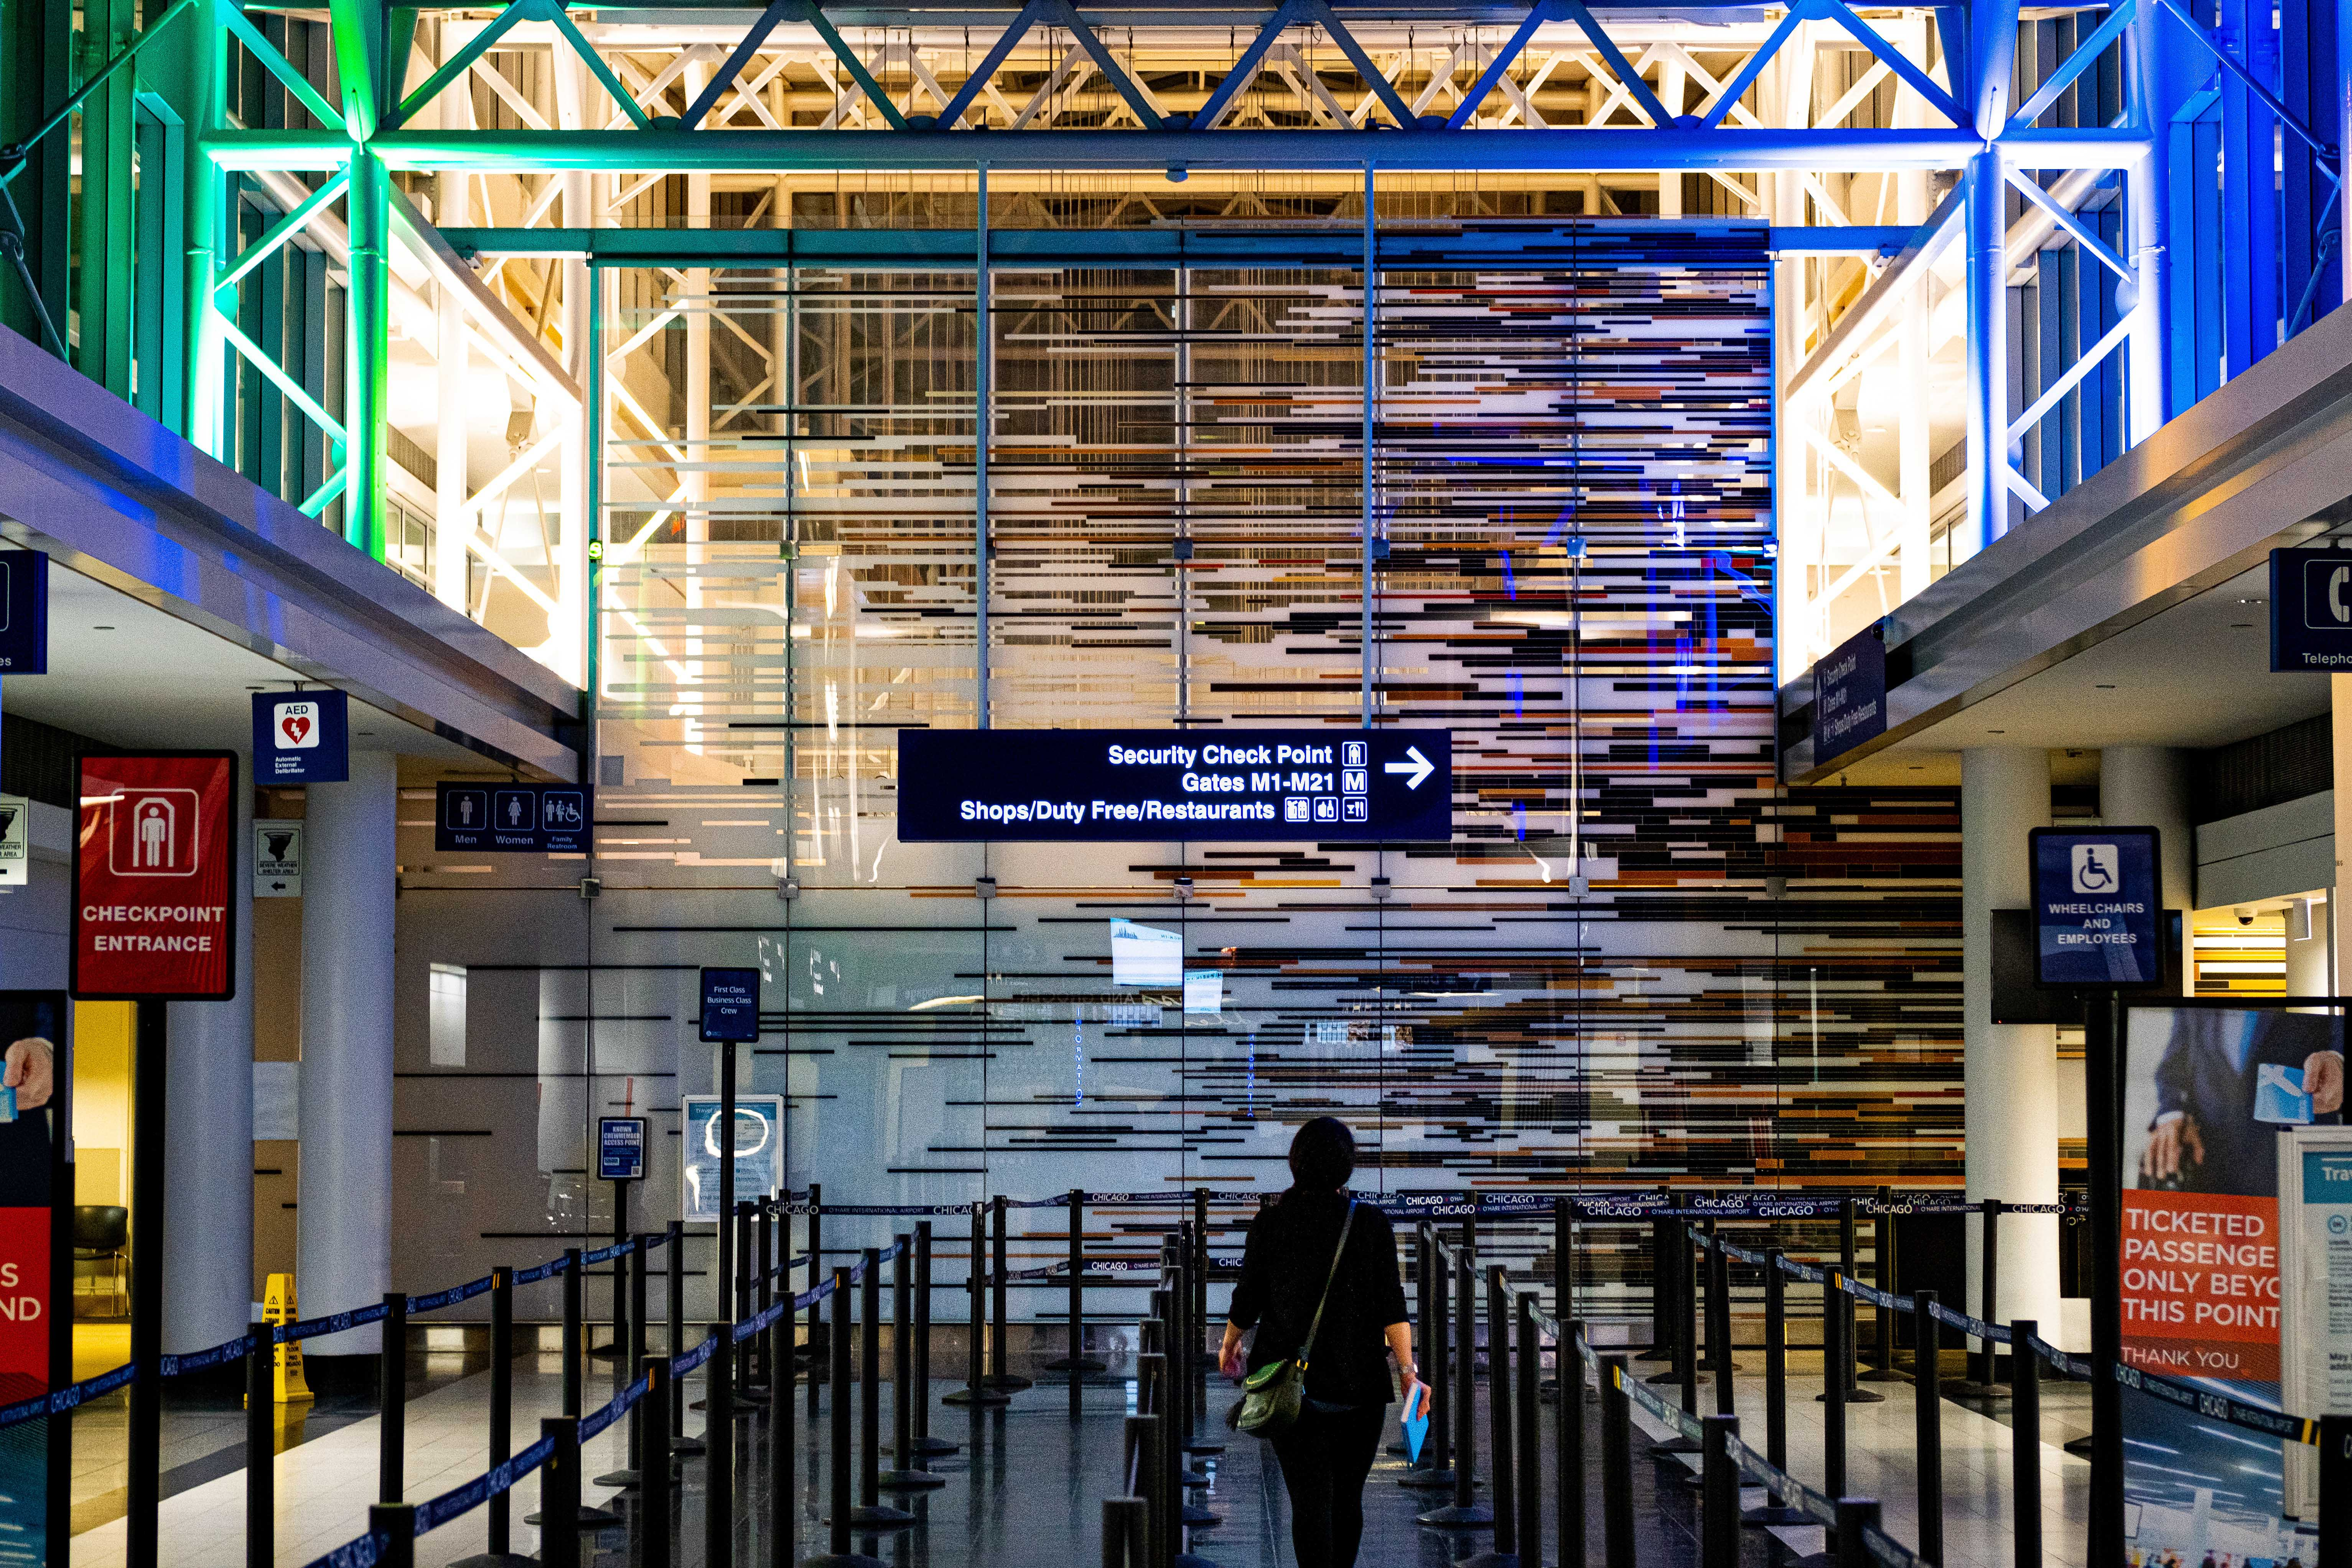 Aviation program management and project controls are the nerve center of airport expansions. For two decades, McKissack's aviation expertise has helped major U.S. airports get the job done on time and on budget.